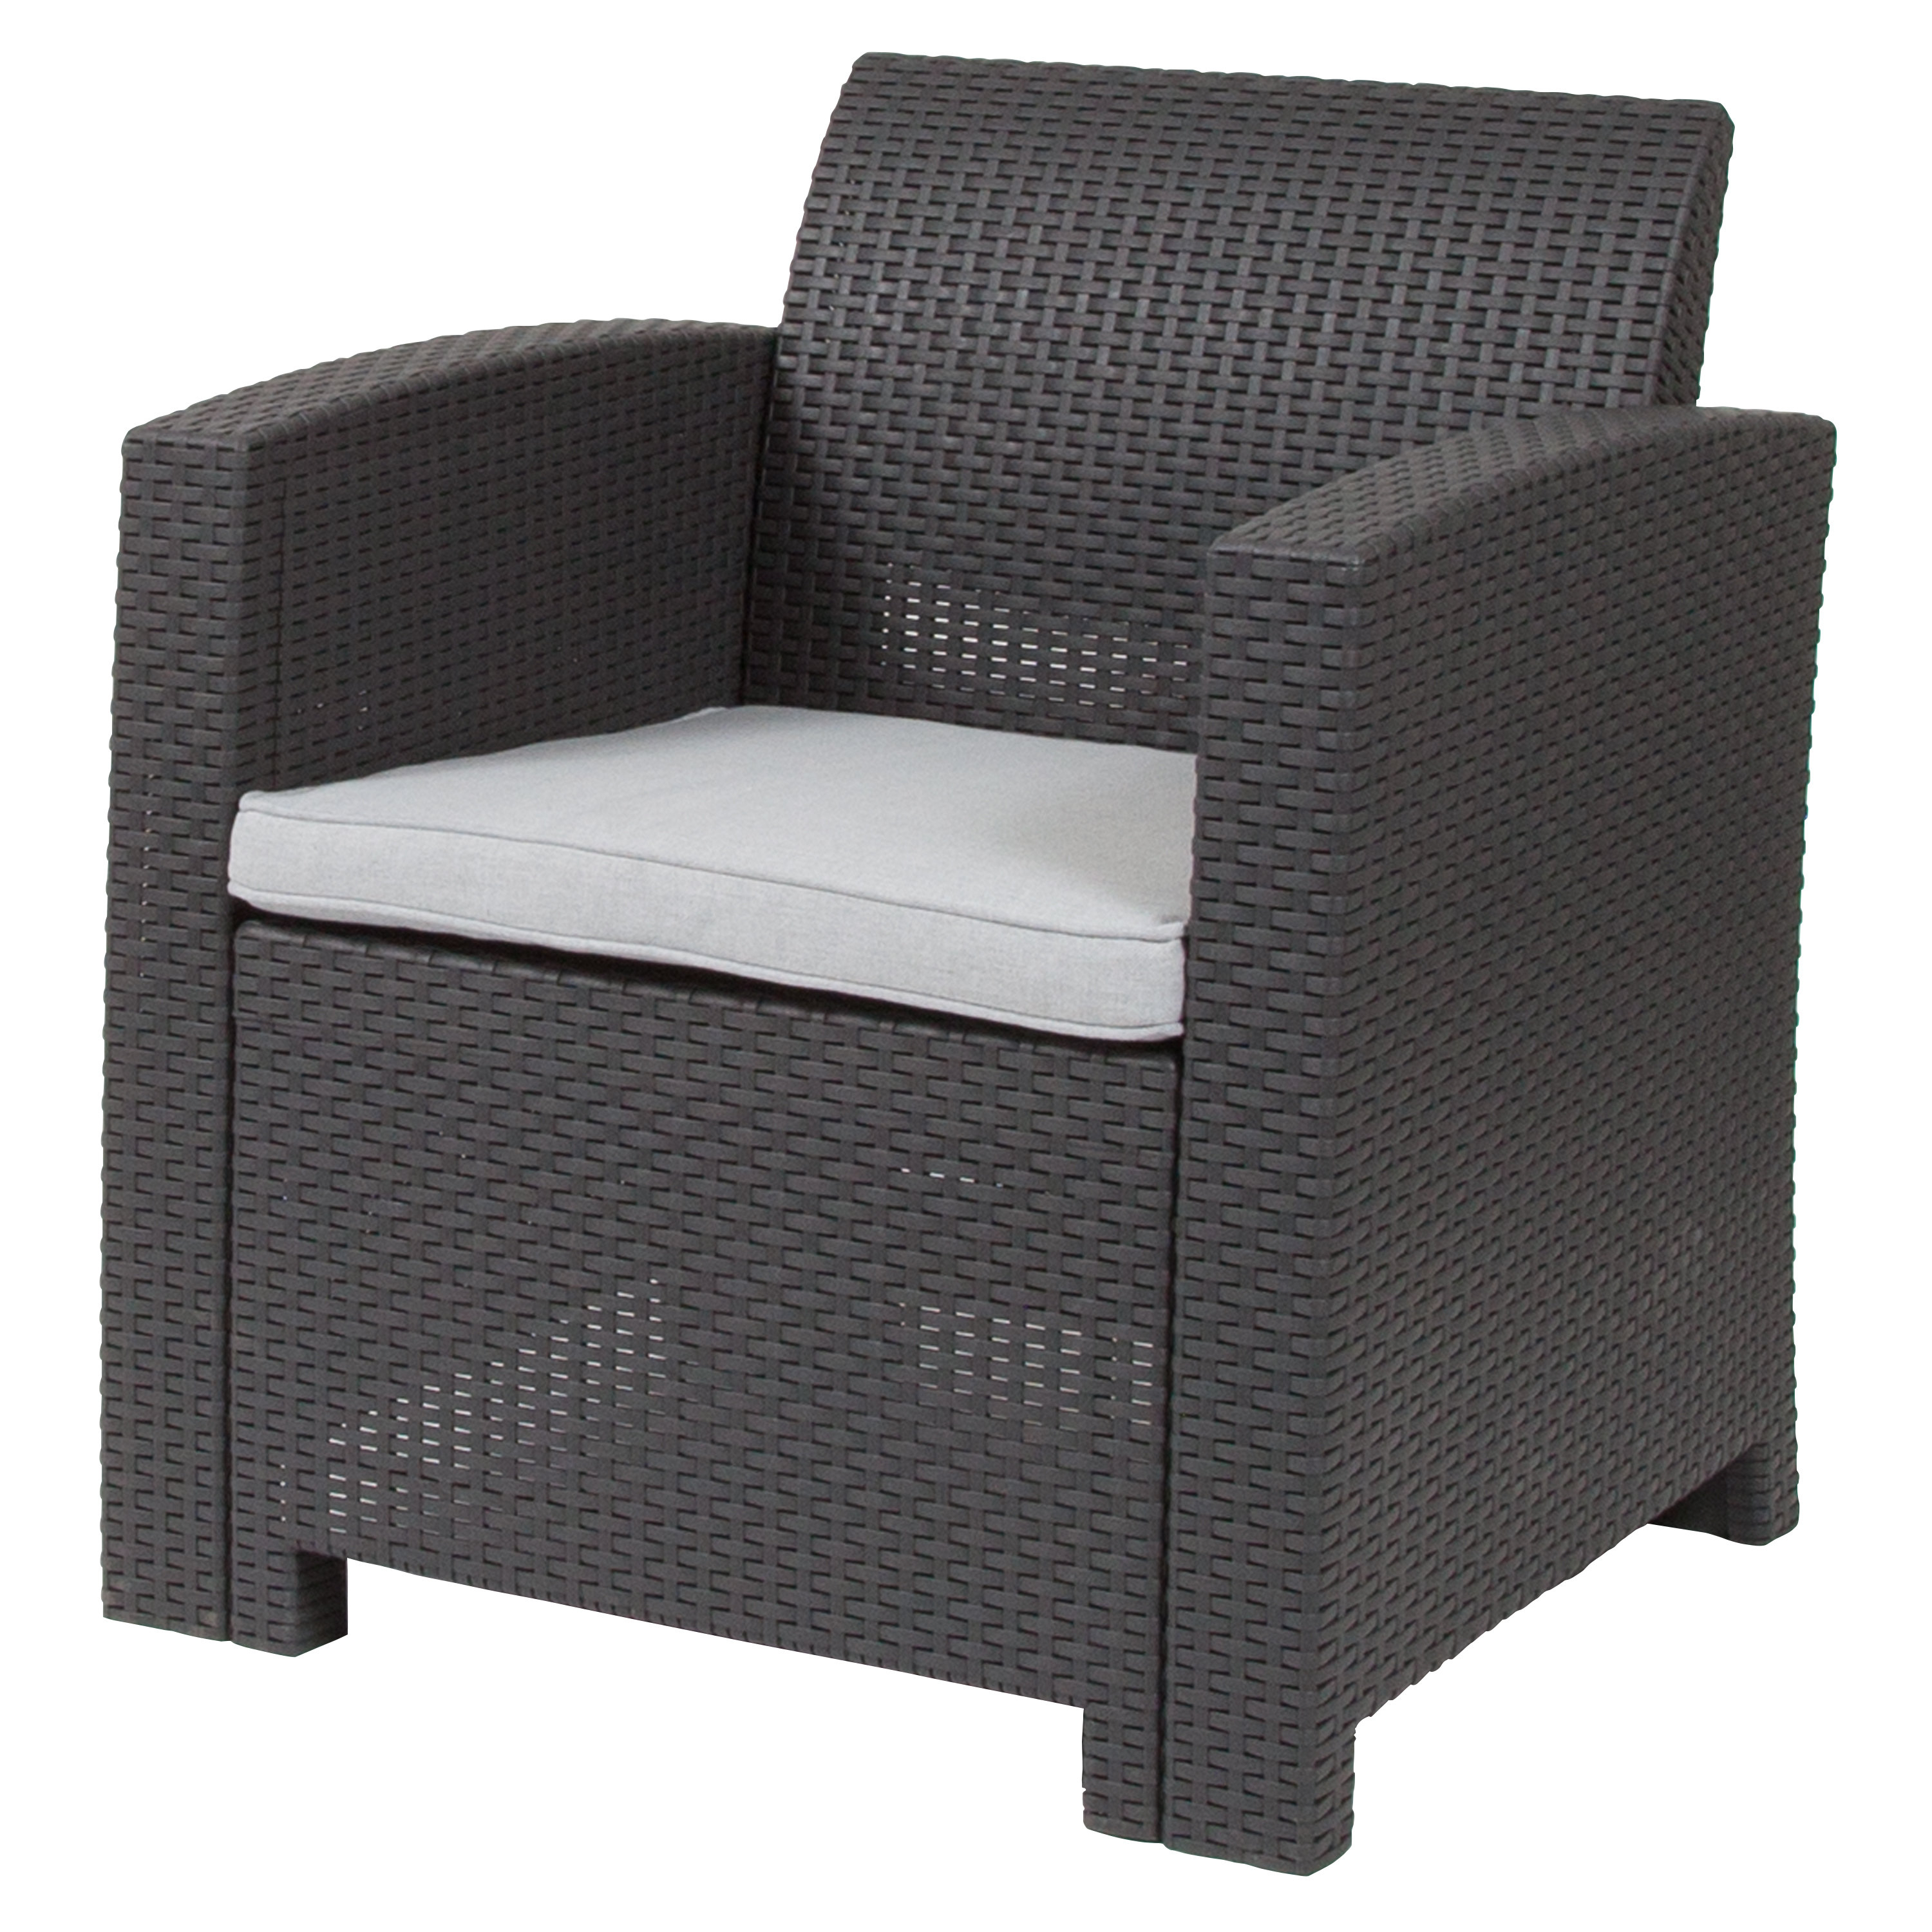 Breakwater Bay Stockwell Patio Chair With Cushion & Reviews Intended For Best And Newest Stockwell Patio Sofas With Cushions (View 2 of 20)